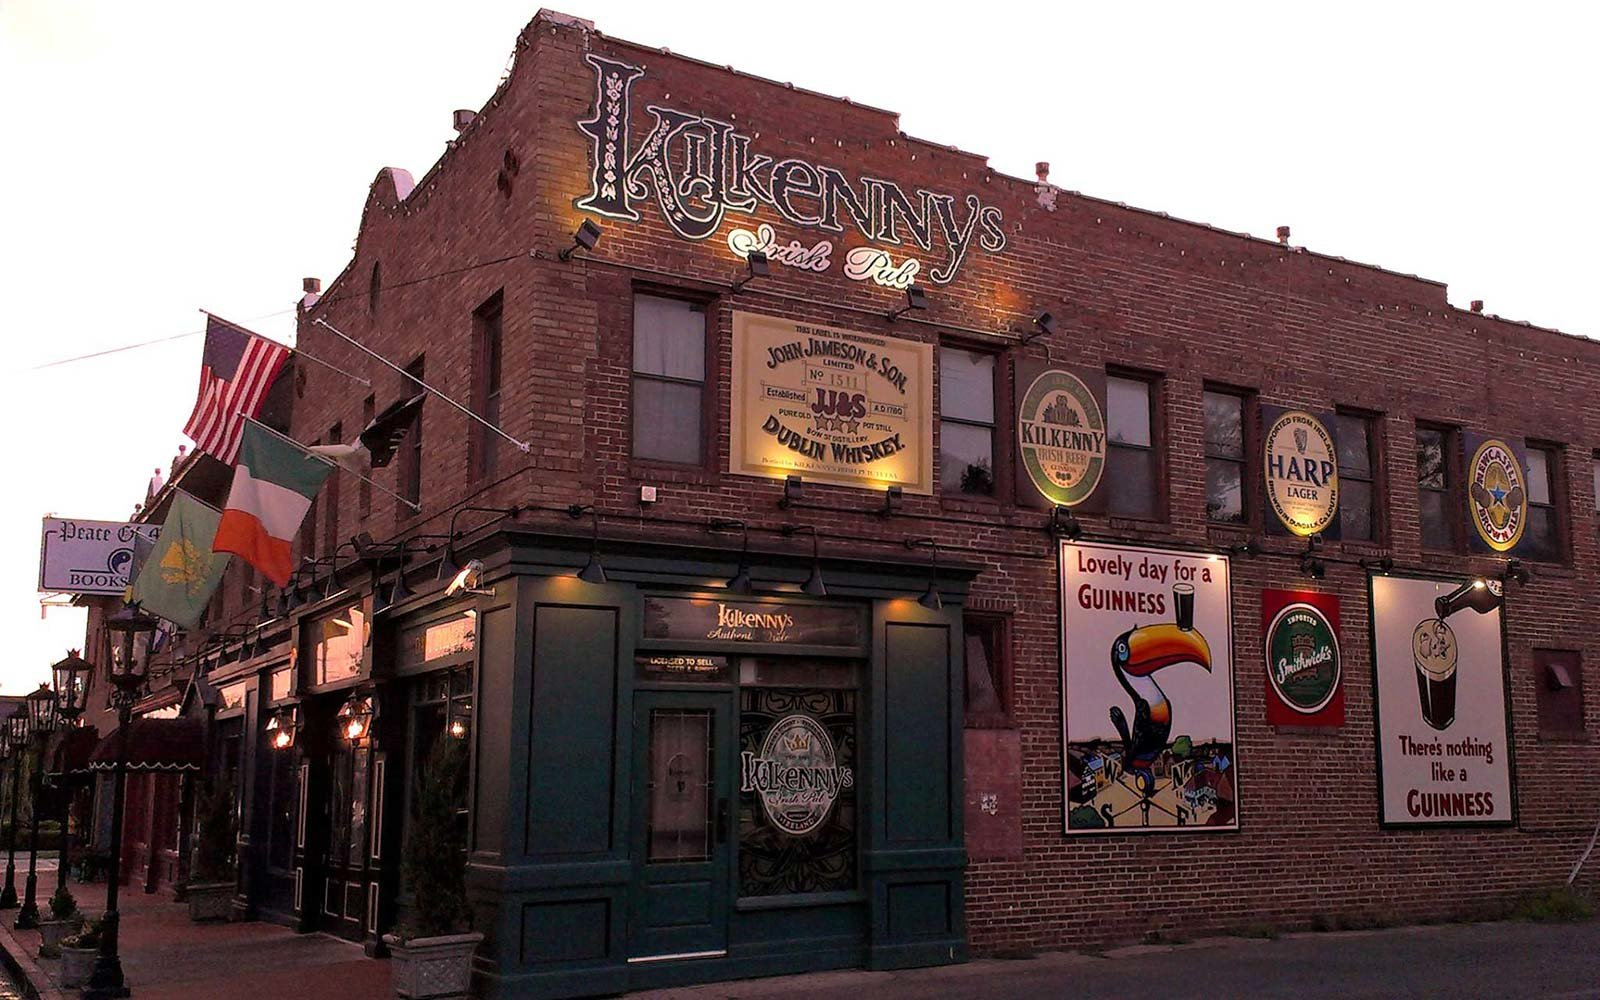 Best U.S. pubs for St. Patrick's Day